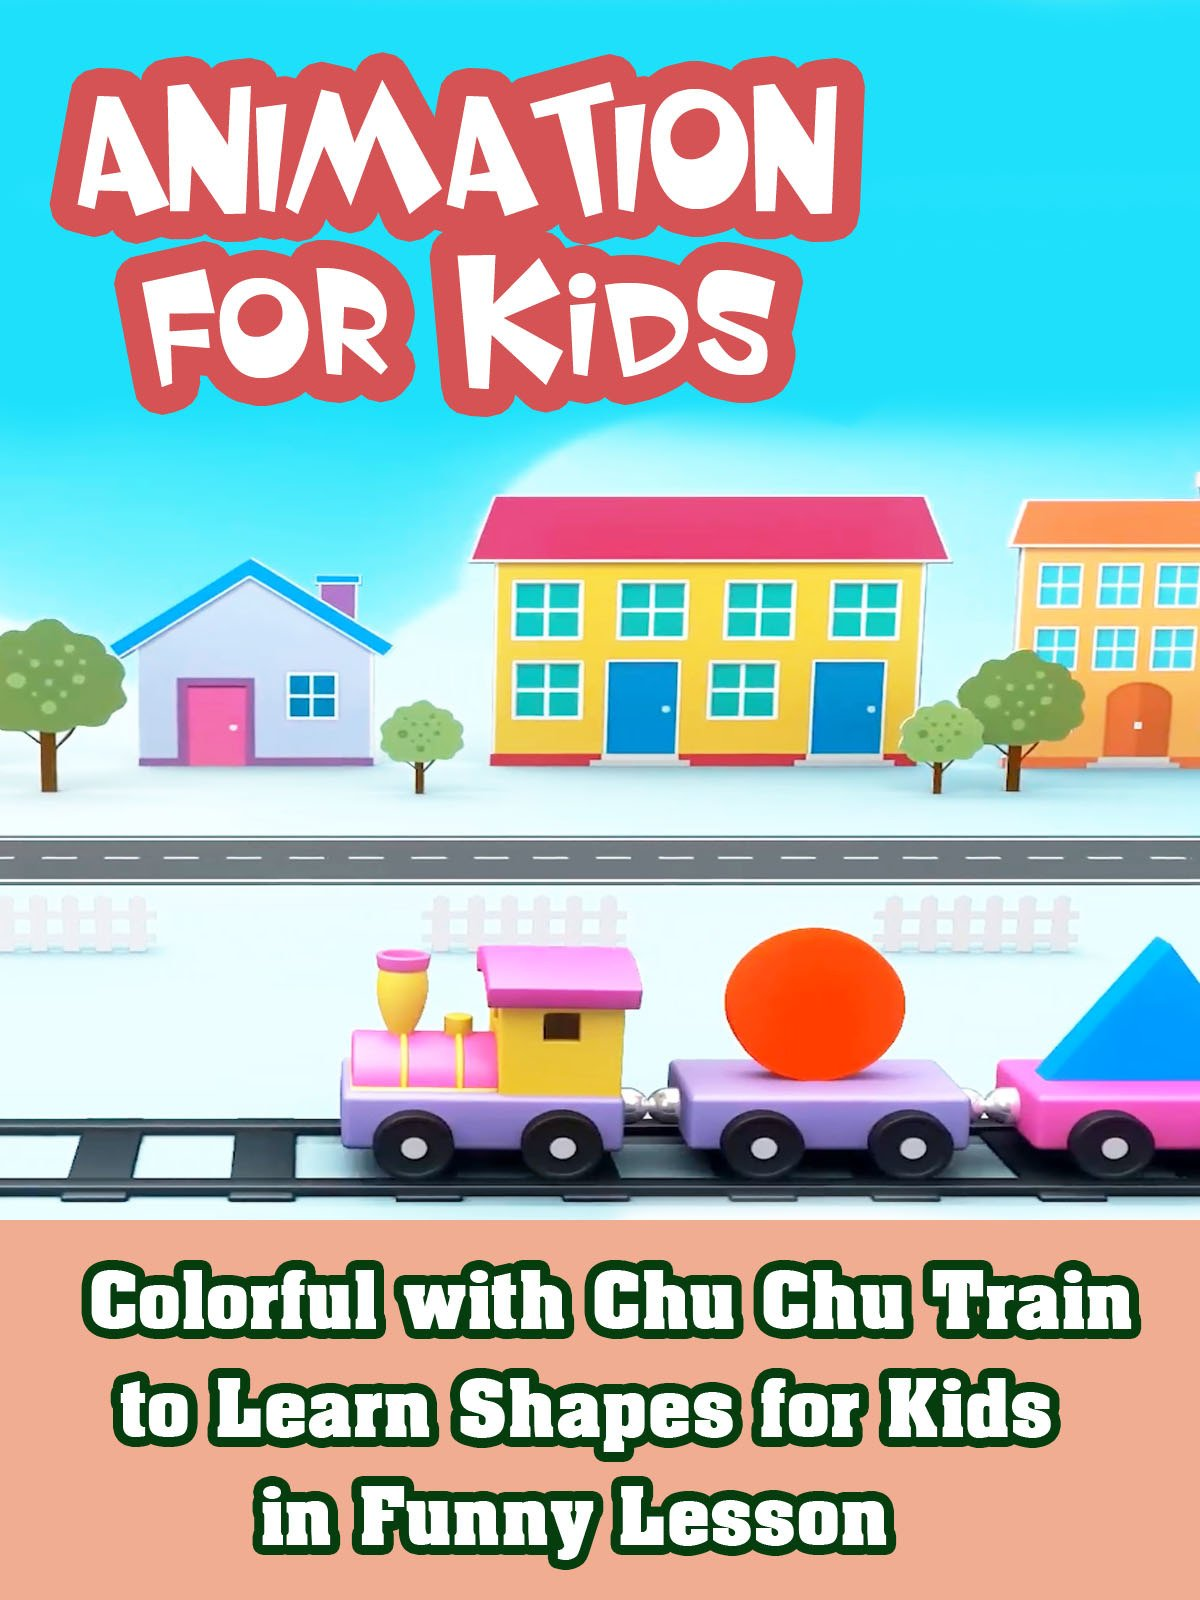 Colorful with Chu Chu Train to Learn Shapes for Kids in Funny Lesson